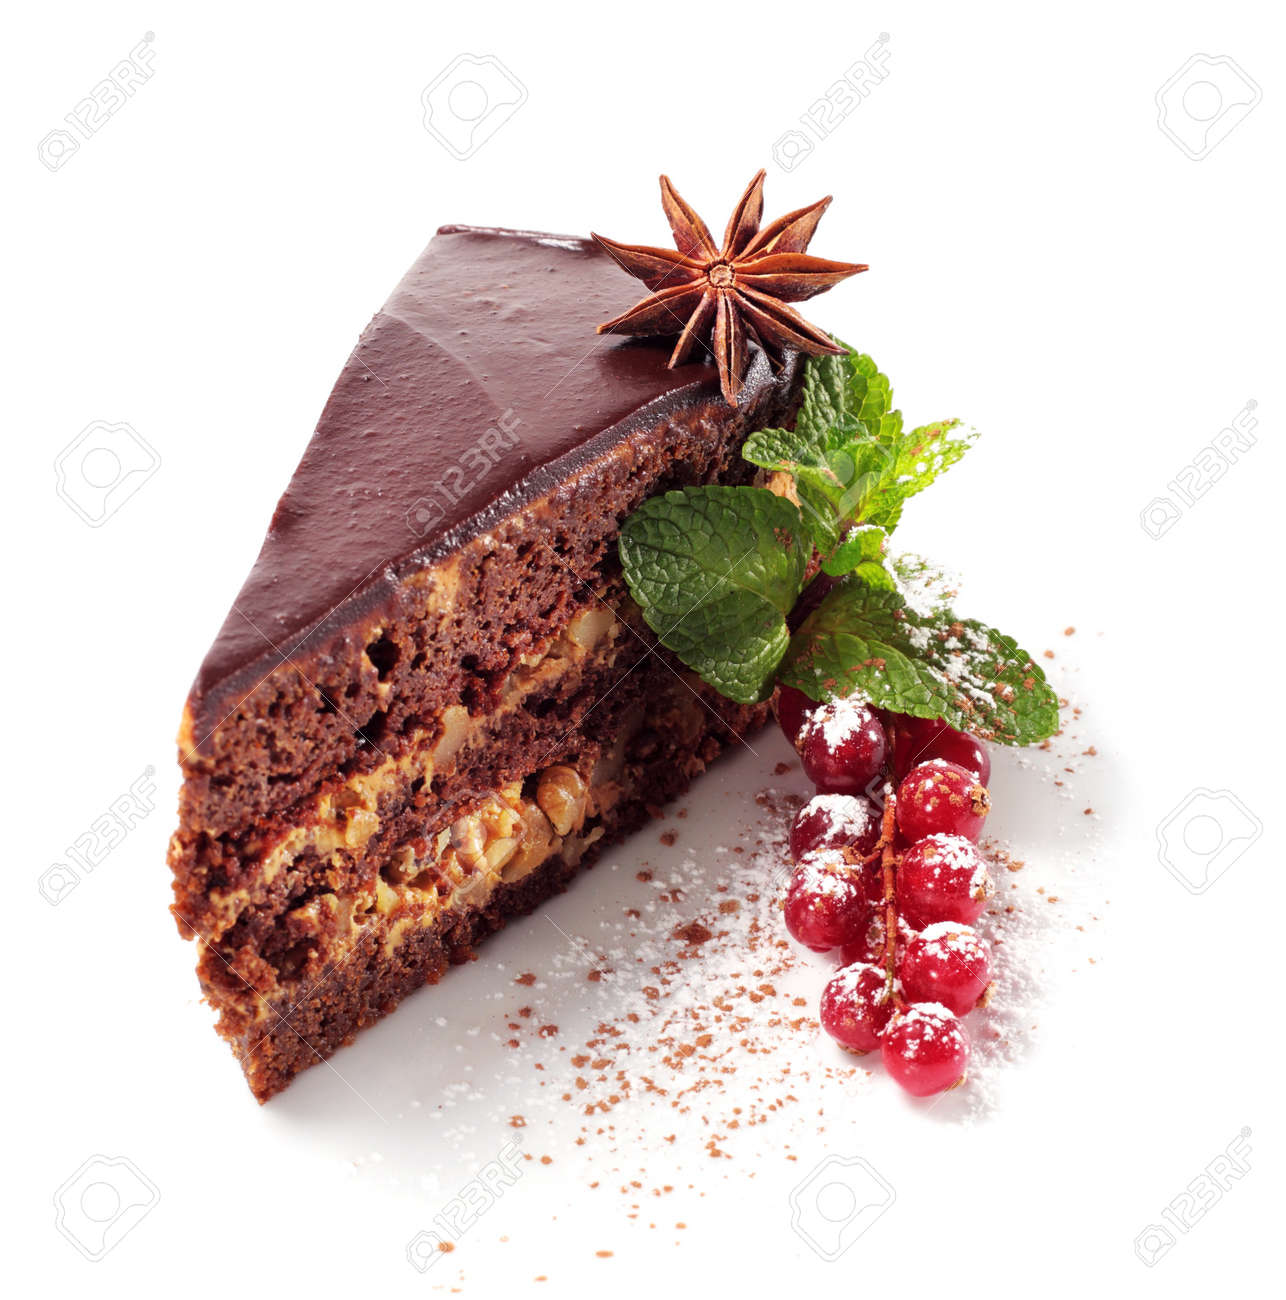 Chocolate Iced Pie with Anise, Fresh Berries and Mint. Isolated on White Background Stock Photo - 4383100